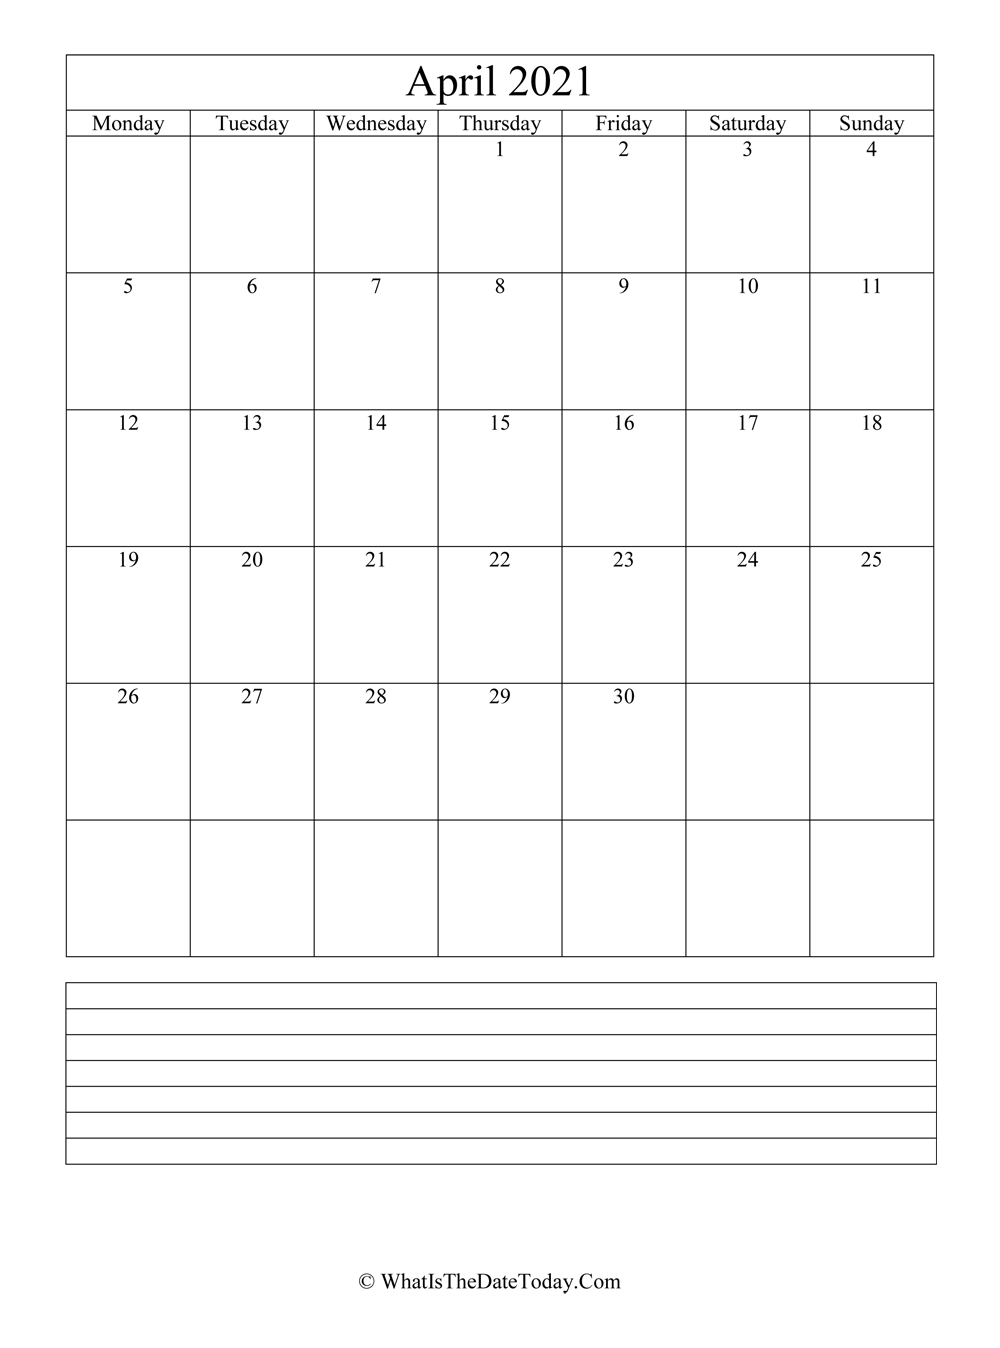 April 2021 Calendar Editable with Notes Space (vertical ...